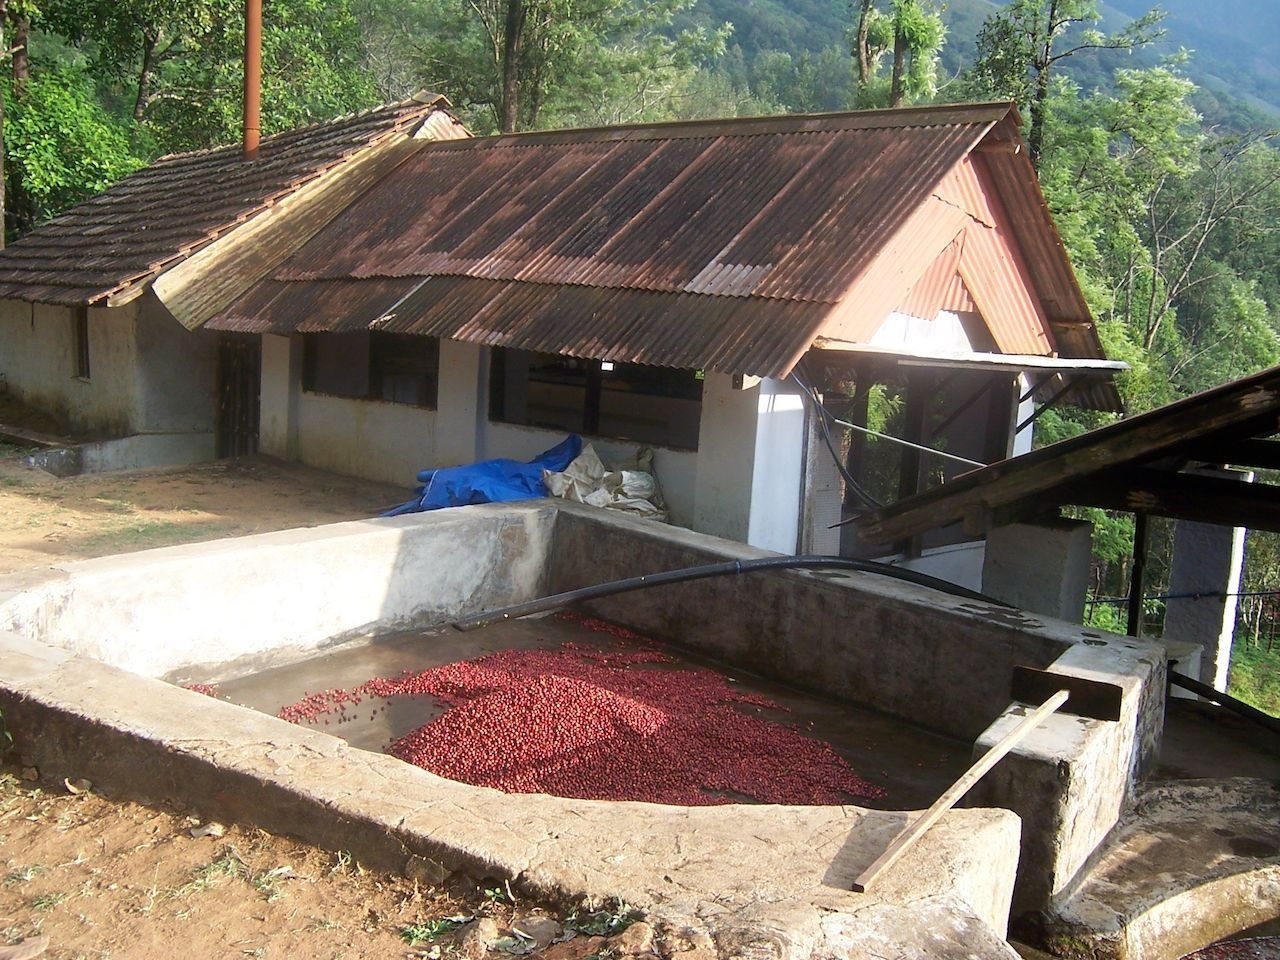 Once the berries have been collected and sorted into classes. They're taken to be pulped at a facility within the residential portion of the bungalow.